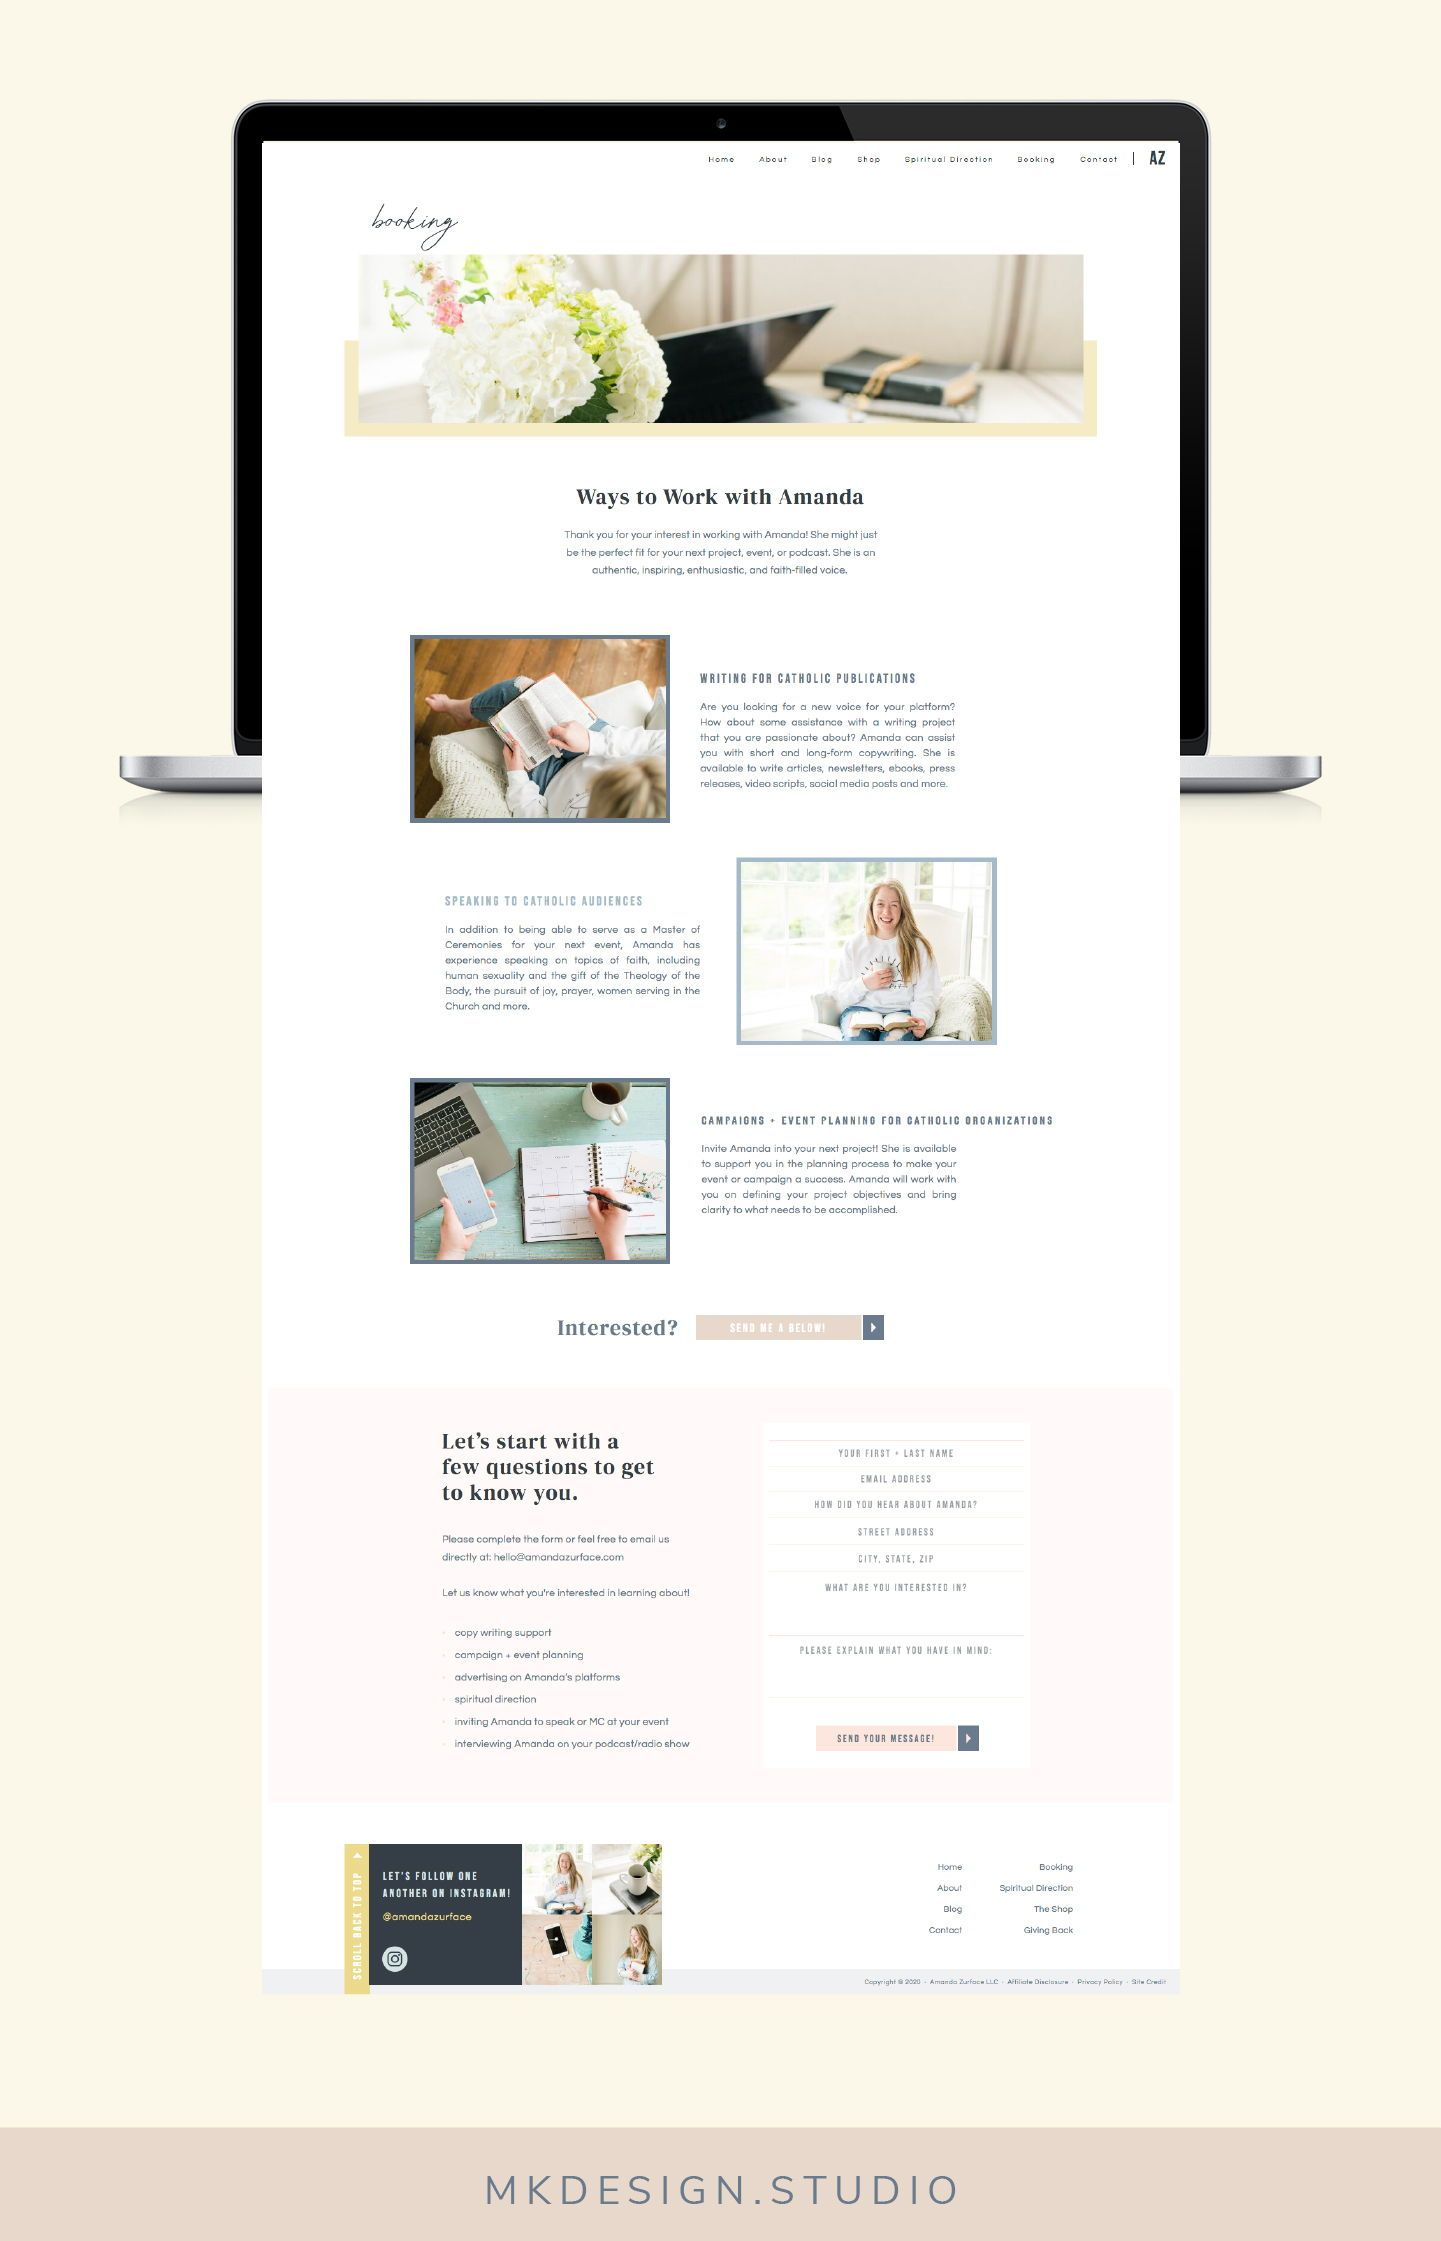 Branding And Web Design For Creatives Branding And Web Design For Small Business Owners In 2020 Blog Website Design Website Design Branding Website Design